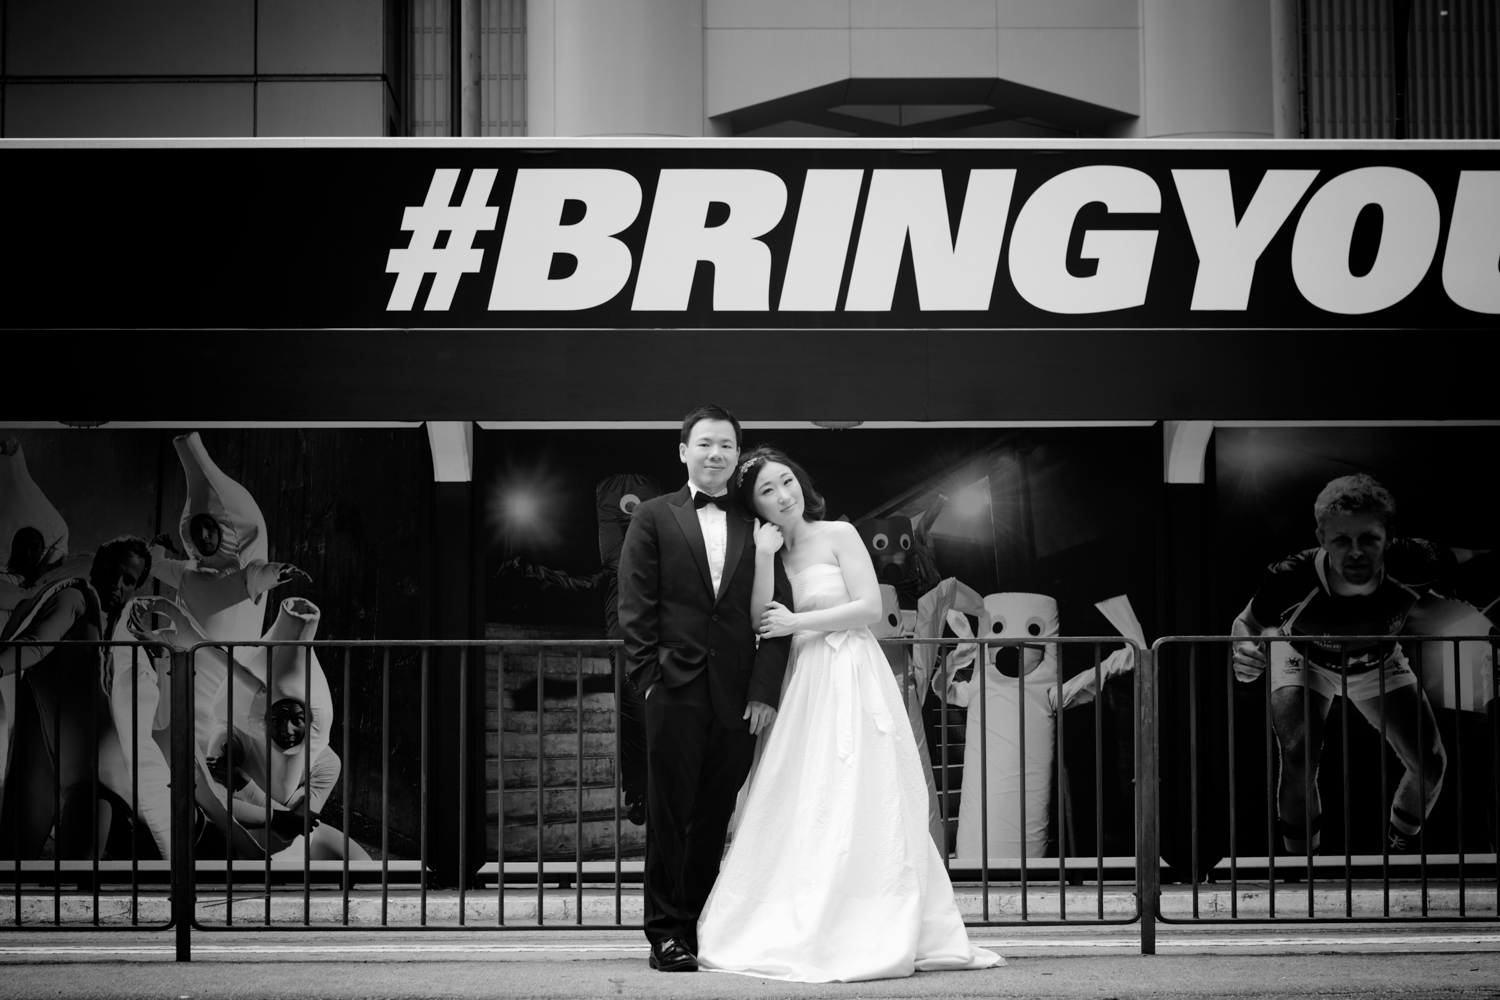 hong-kong-pre-wedding-photographer-couple-in-front-of-tram-black-and-white-central-hsbc-building.jpg